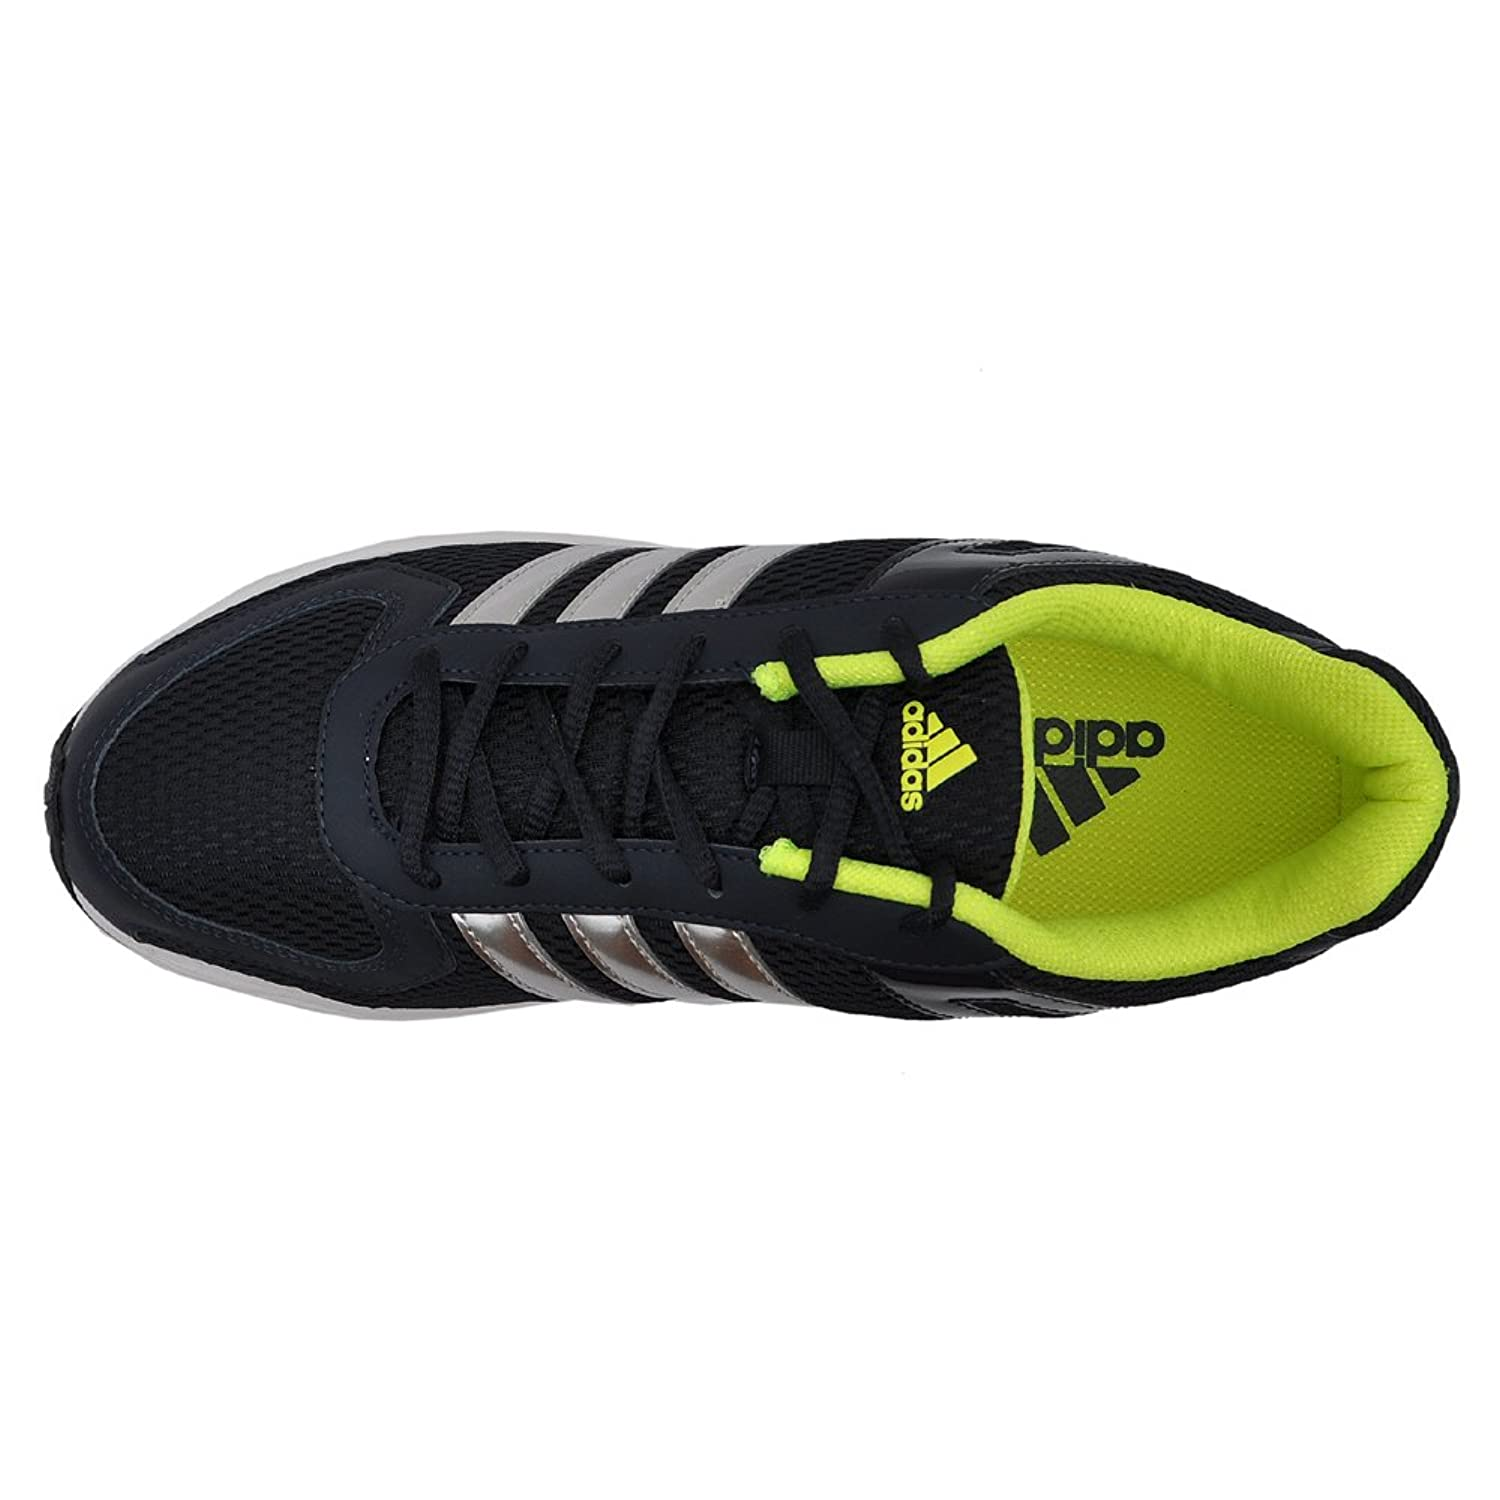 Adidas Men's Galba Black and Metallic Silver Running Shoes - 10 UK: Buy  Online at Low Prices in India - Amazon.in